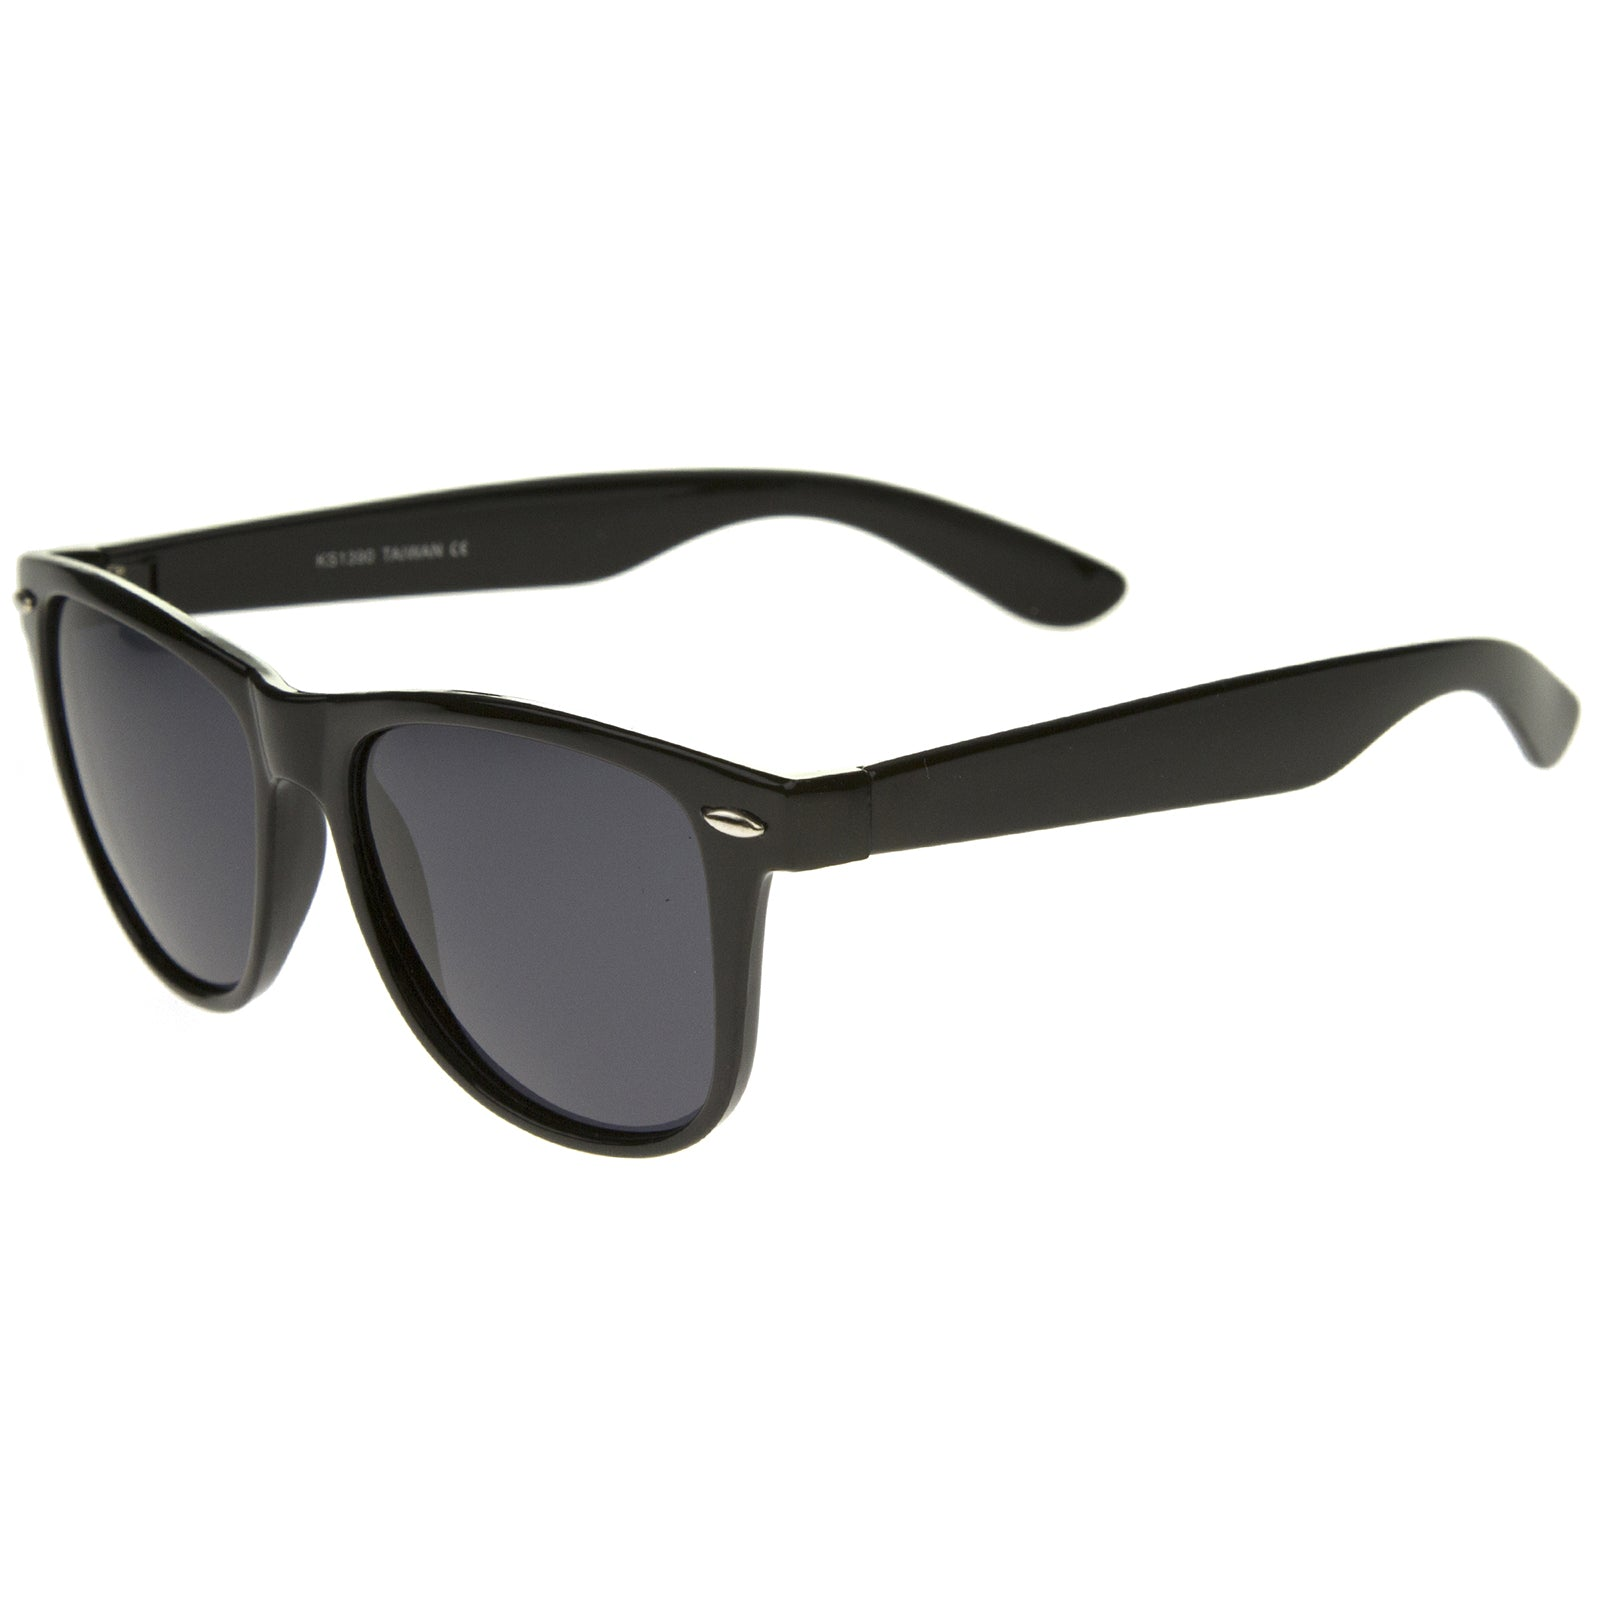 Large Oversize Classic Dark Tinted Lens Horn Rimmed Sunglasses 55mm - sunglass.la - 3